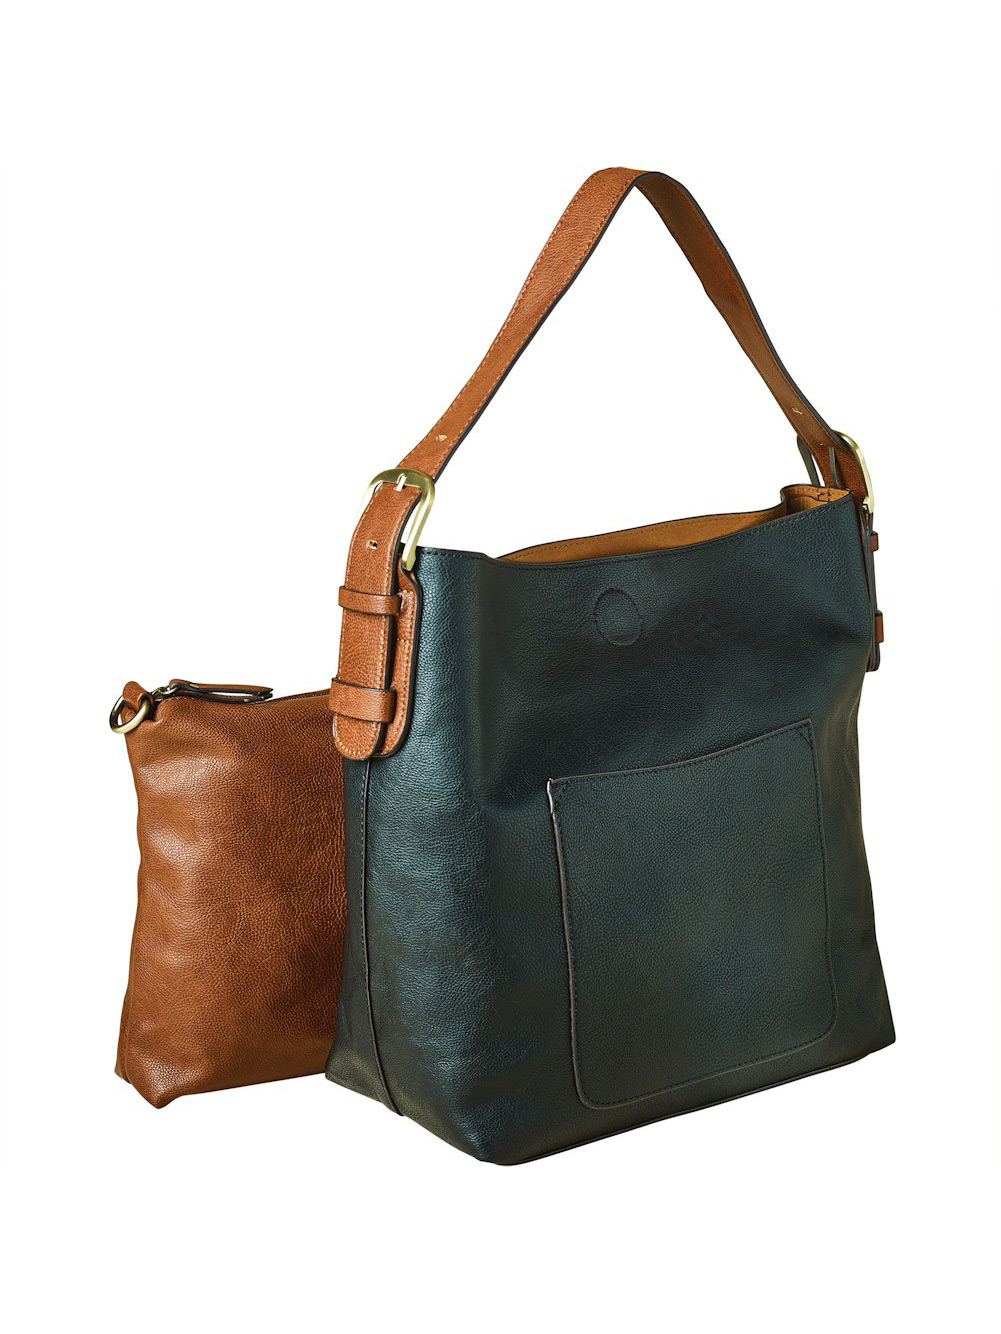 Women's Classic 2-In-1 Hobo Shoulder Bag and Small Clutch Purse - Vegan Leather